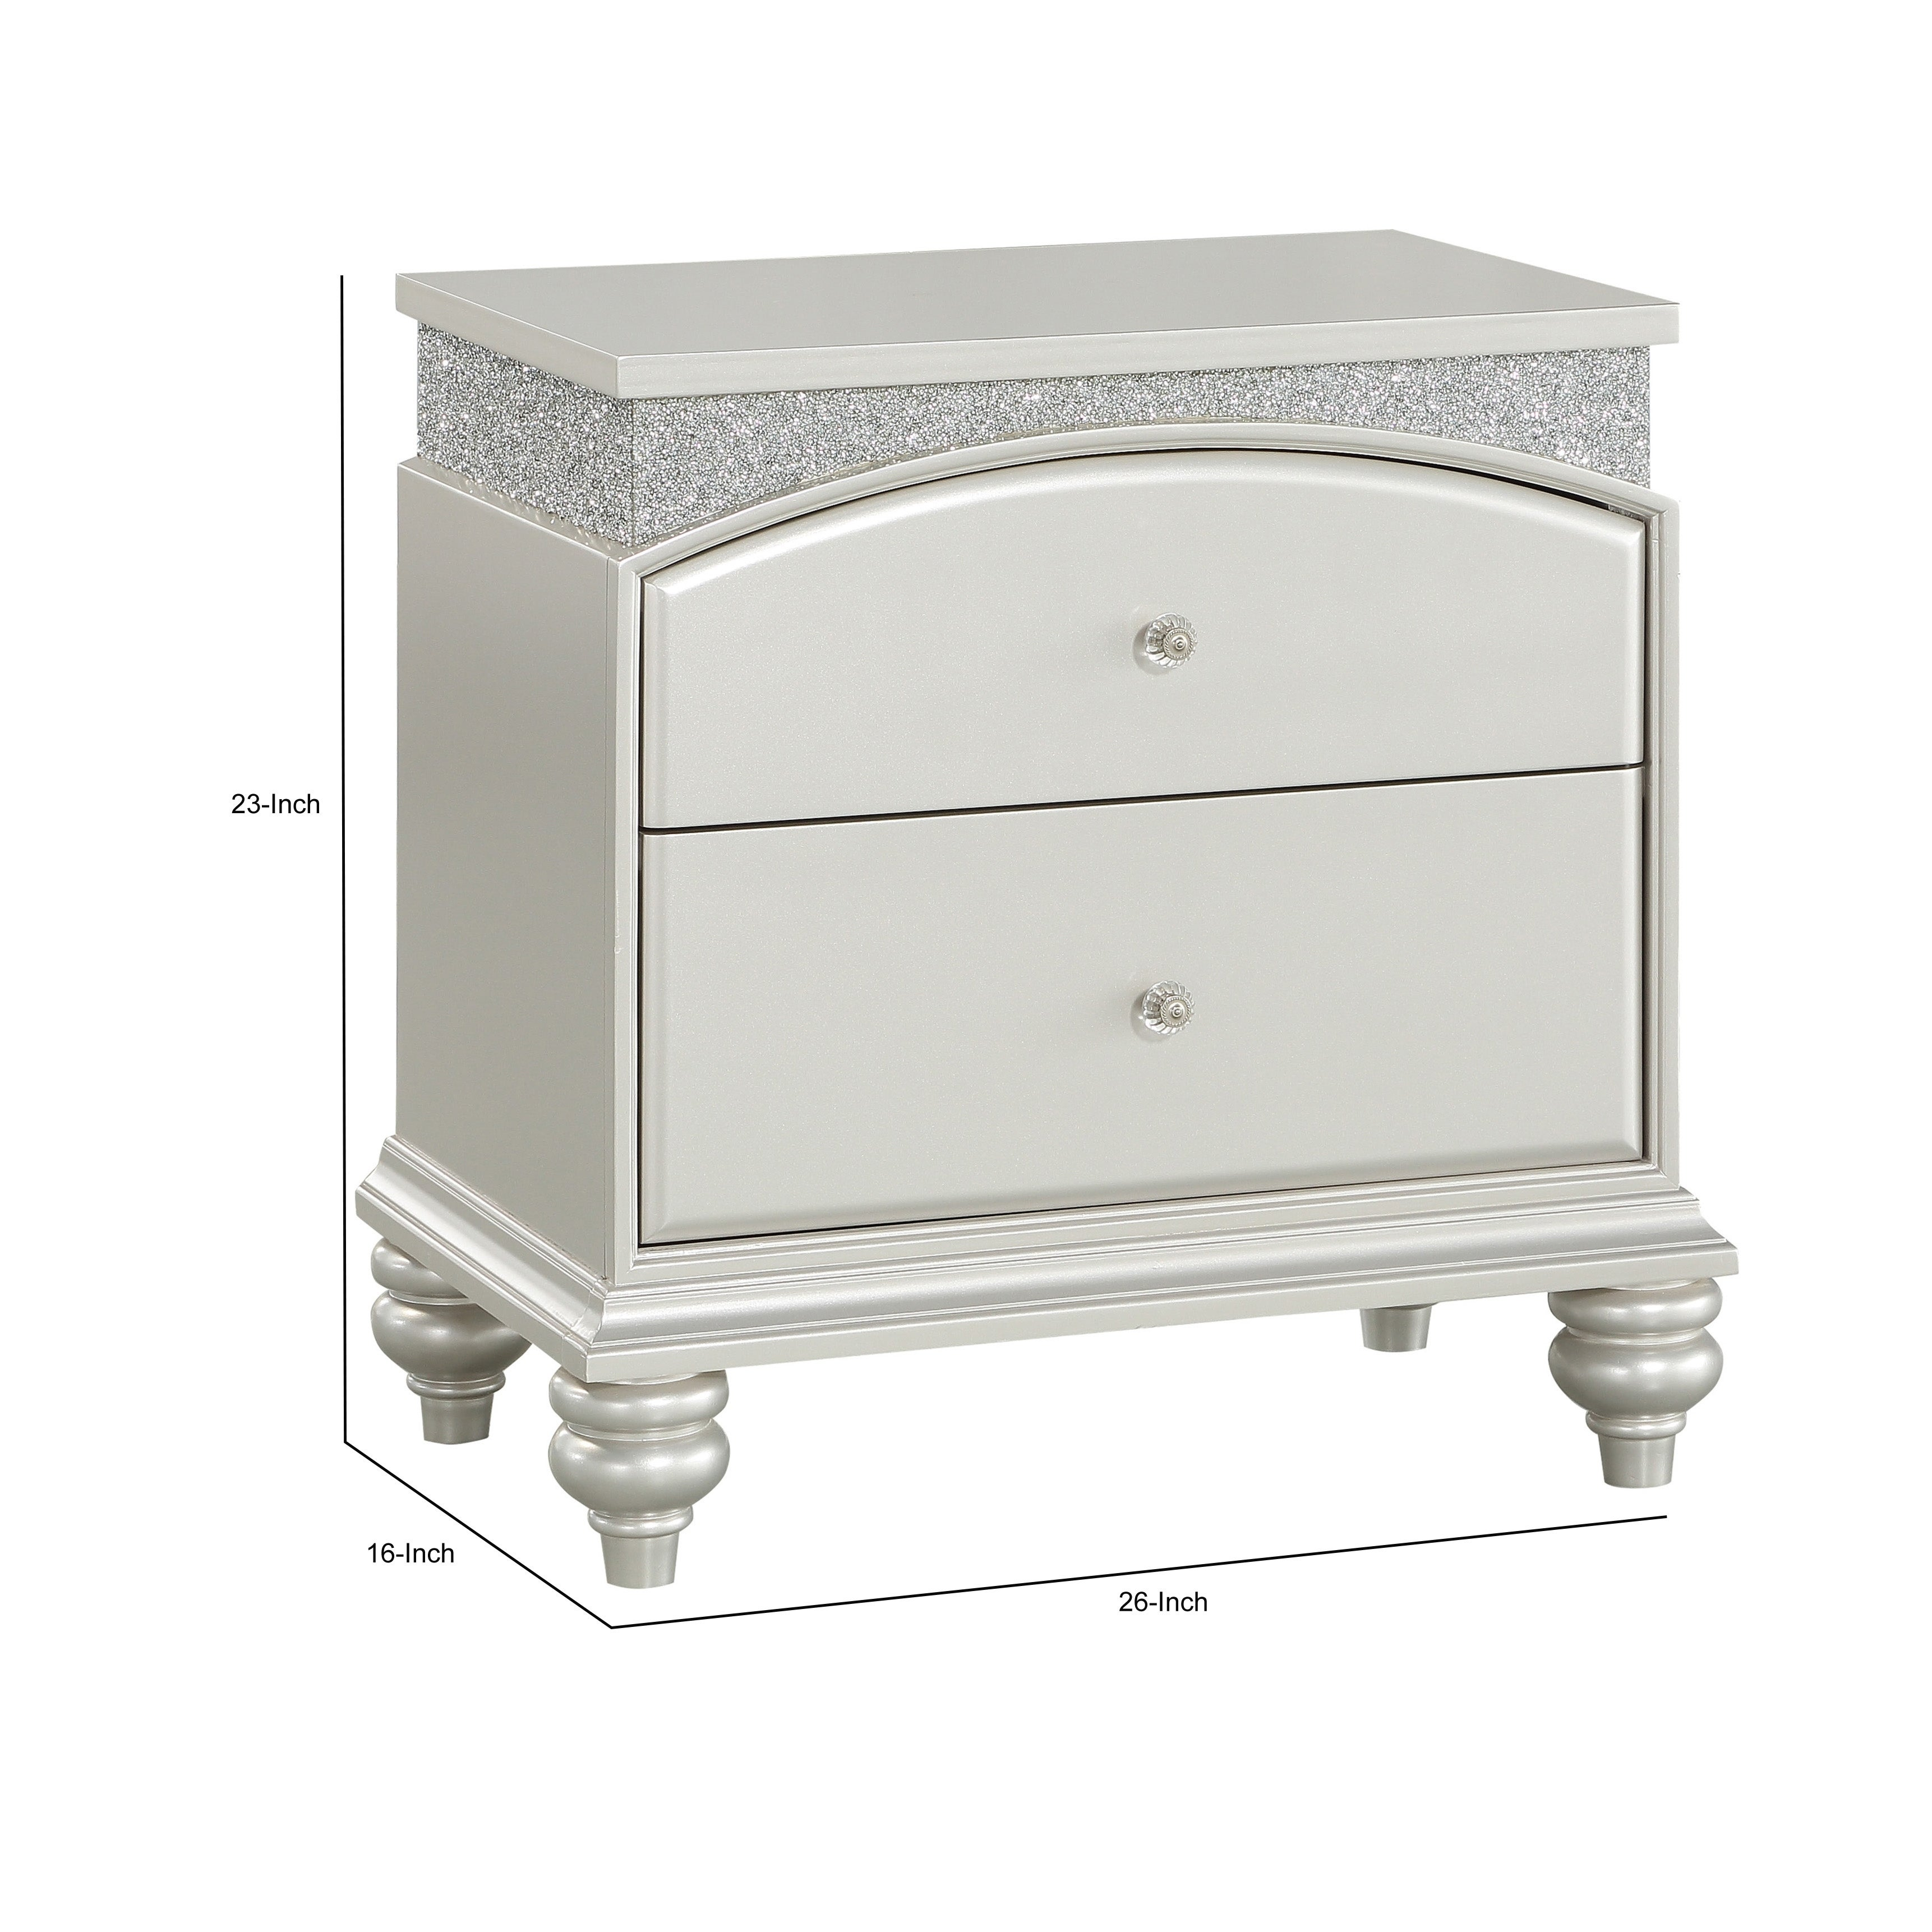 Modern Style 2 Drawer Wooden Nightstand With Rhinestone Inlays Silver